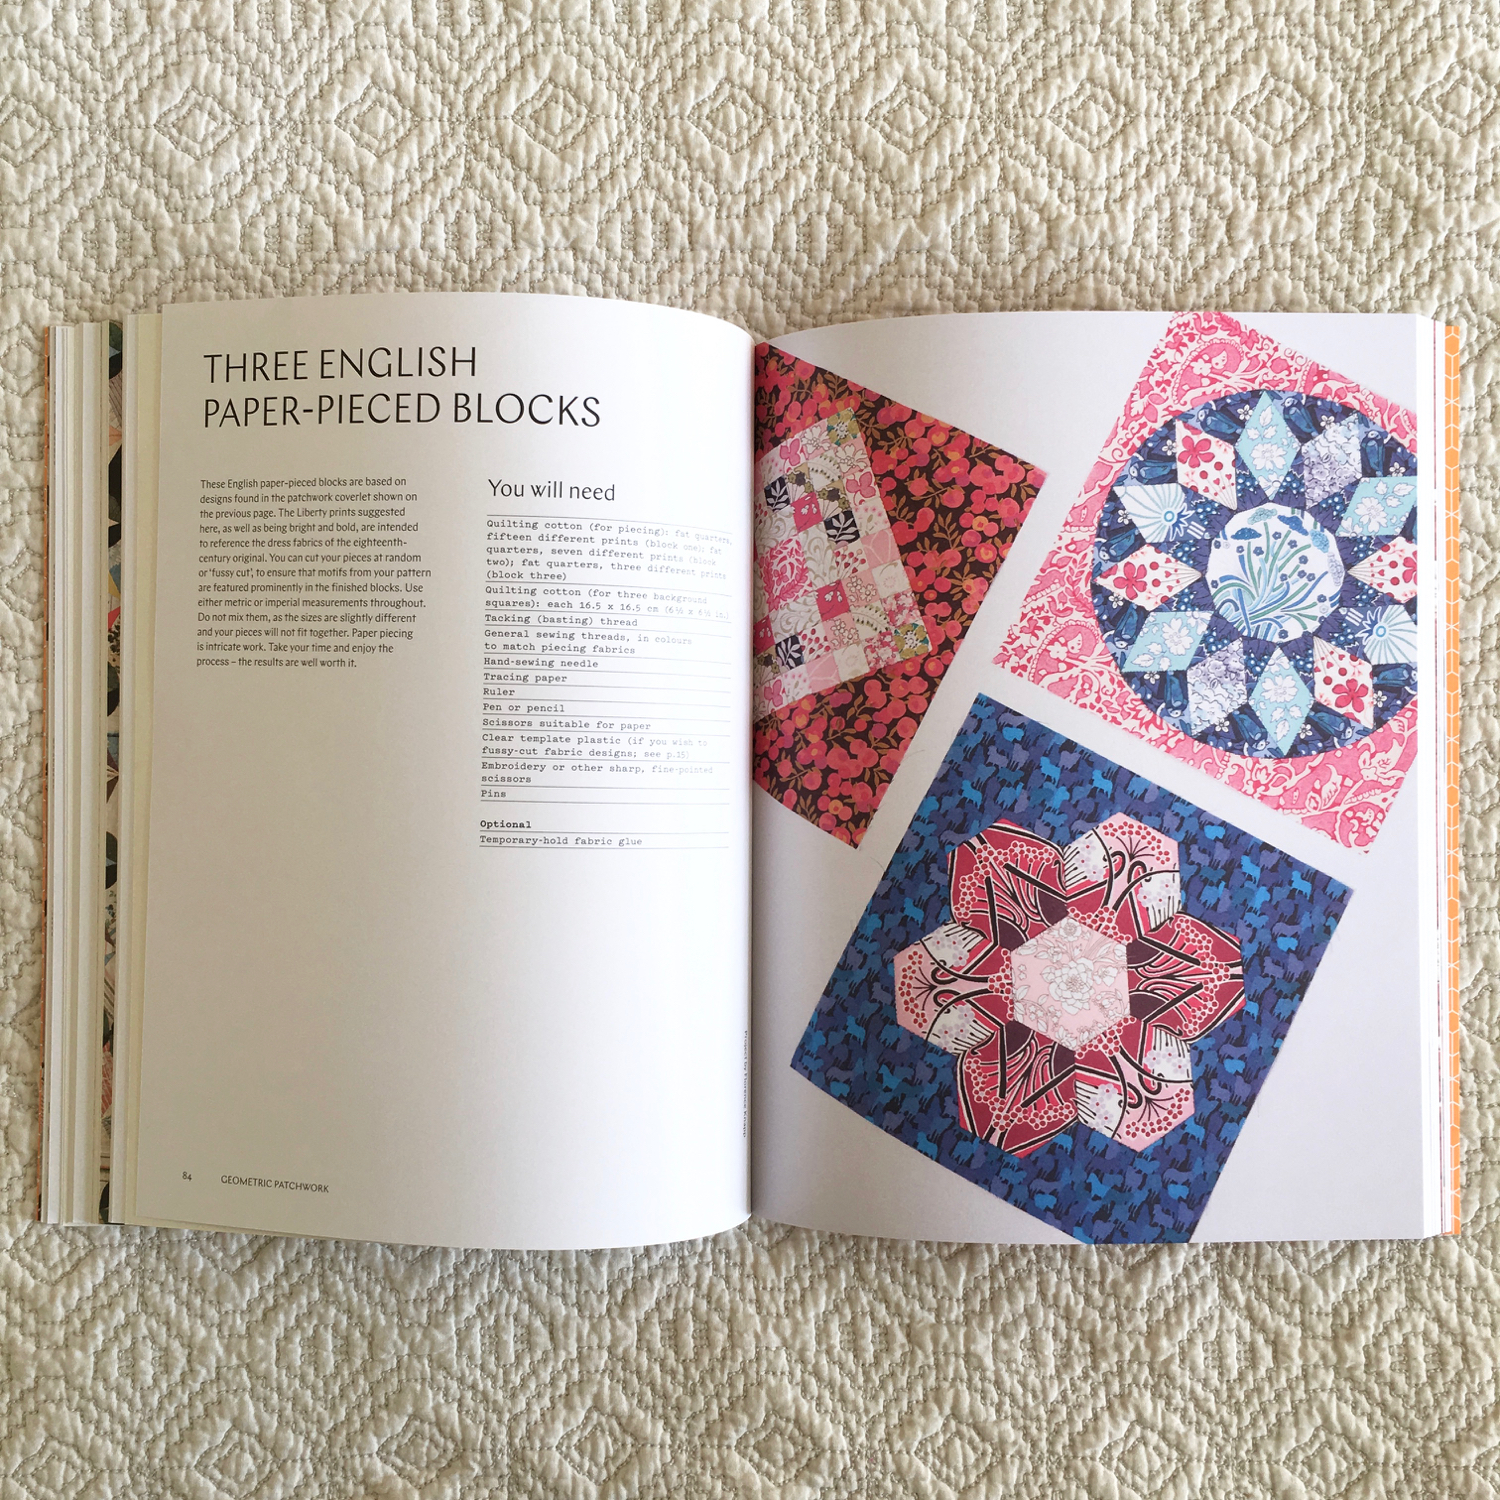 Flossie teacakes patchwork quilting a makers guide last year an email landed in my inbox asking if id like to contribute an english paper pieced project to a book that the victoria albert museum were maxwellsz